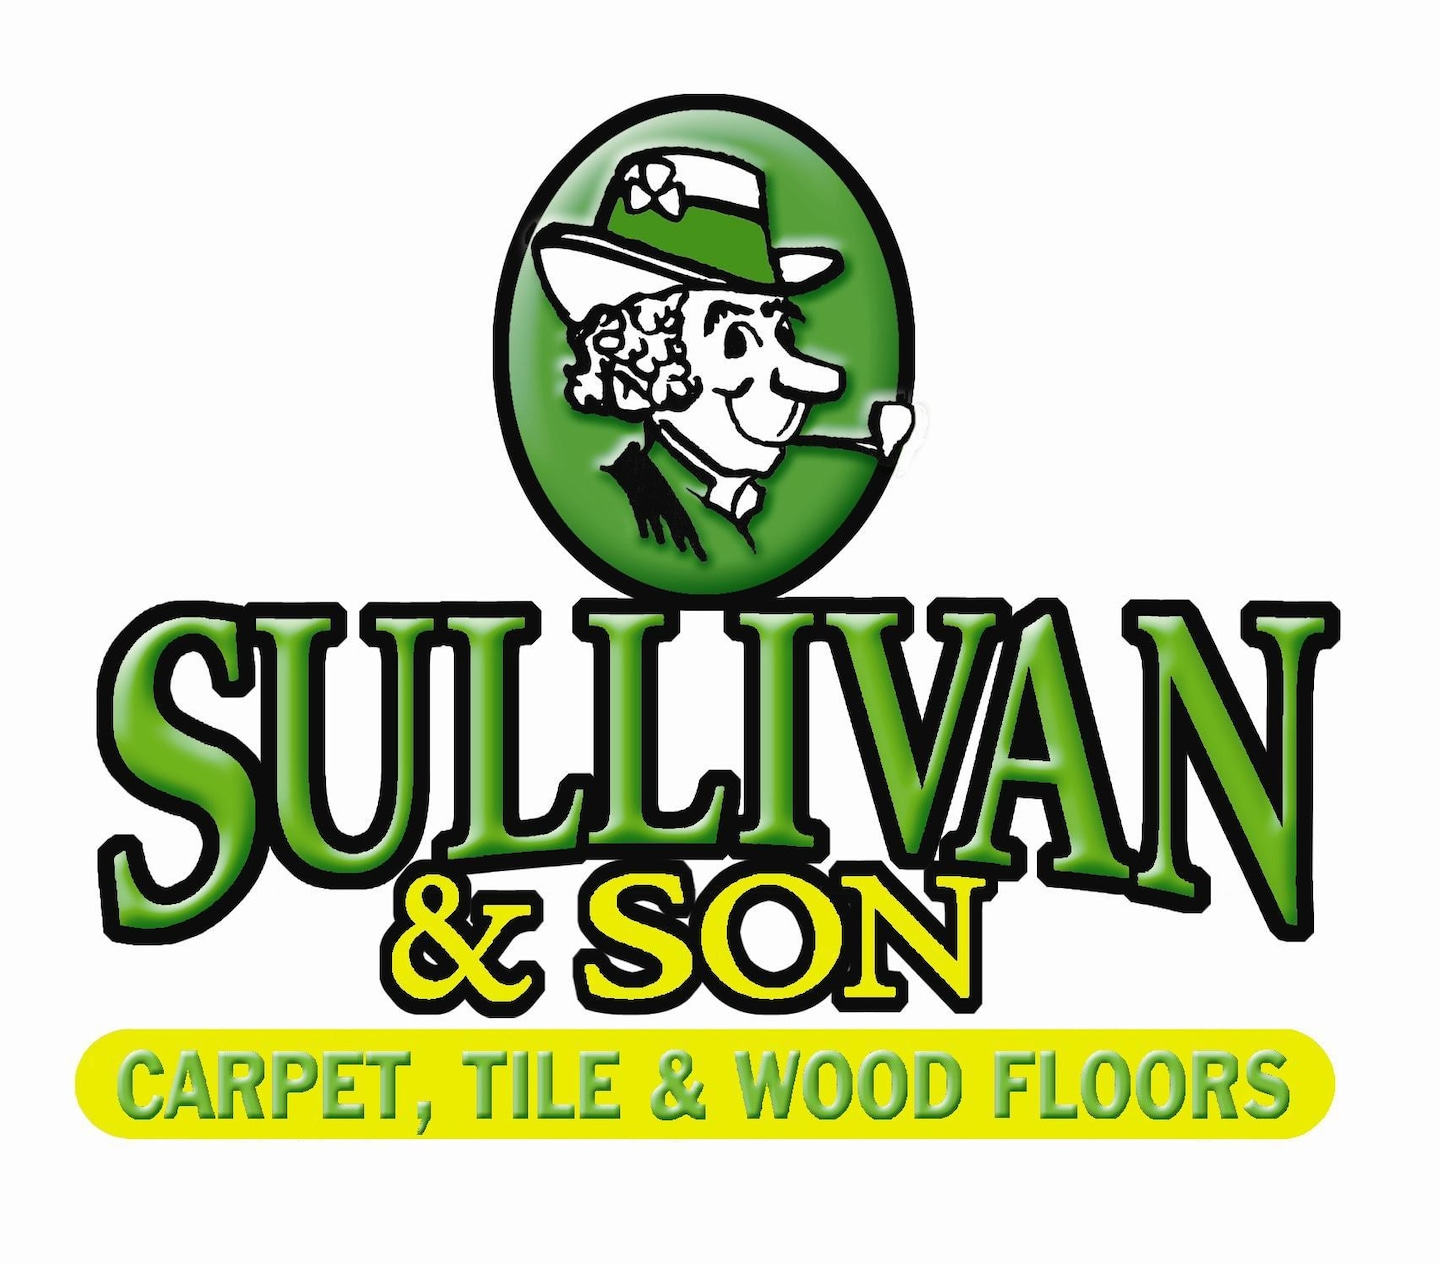 Sullivan & Son Carpet Inc